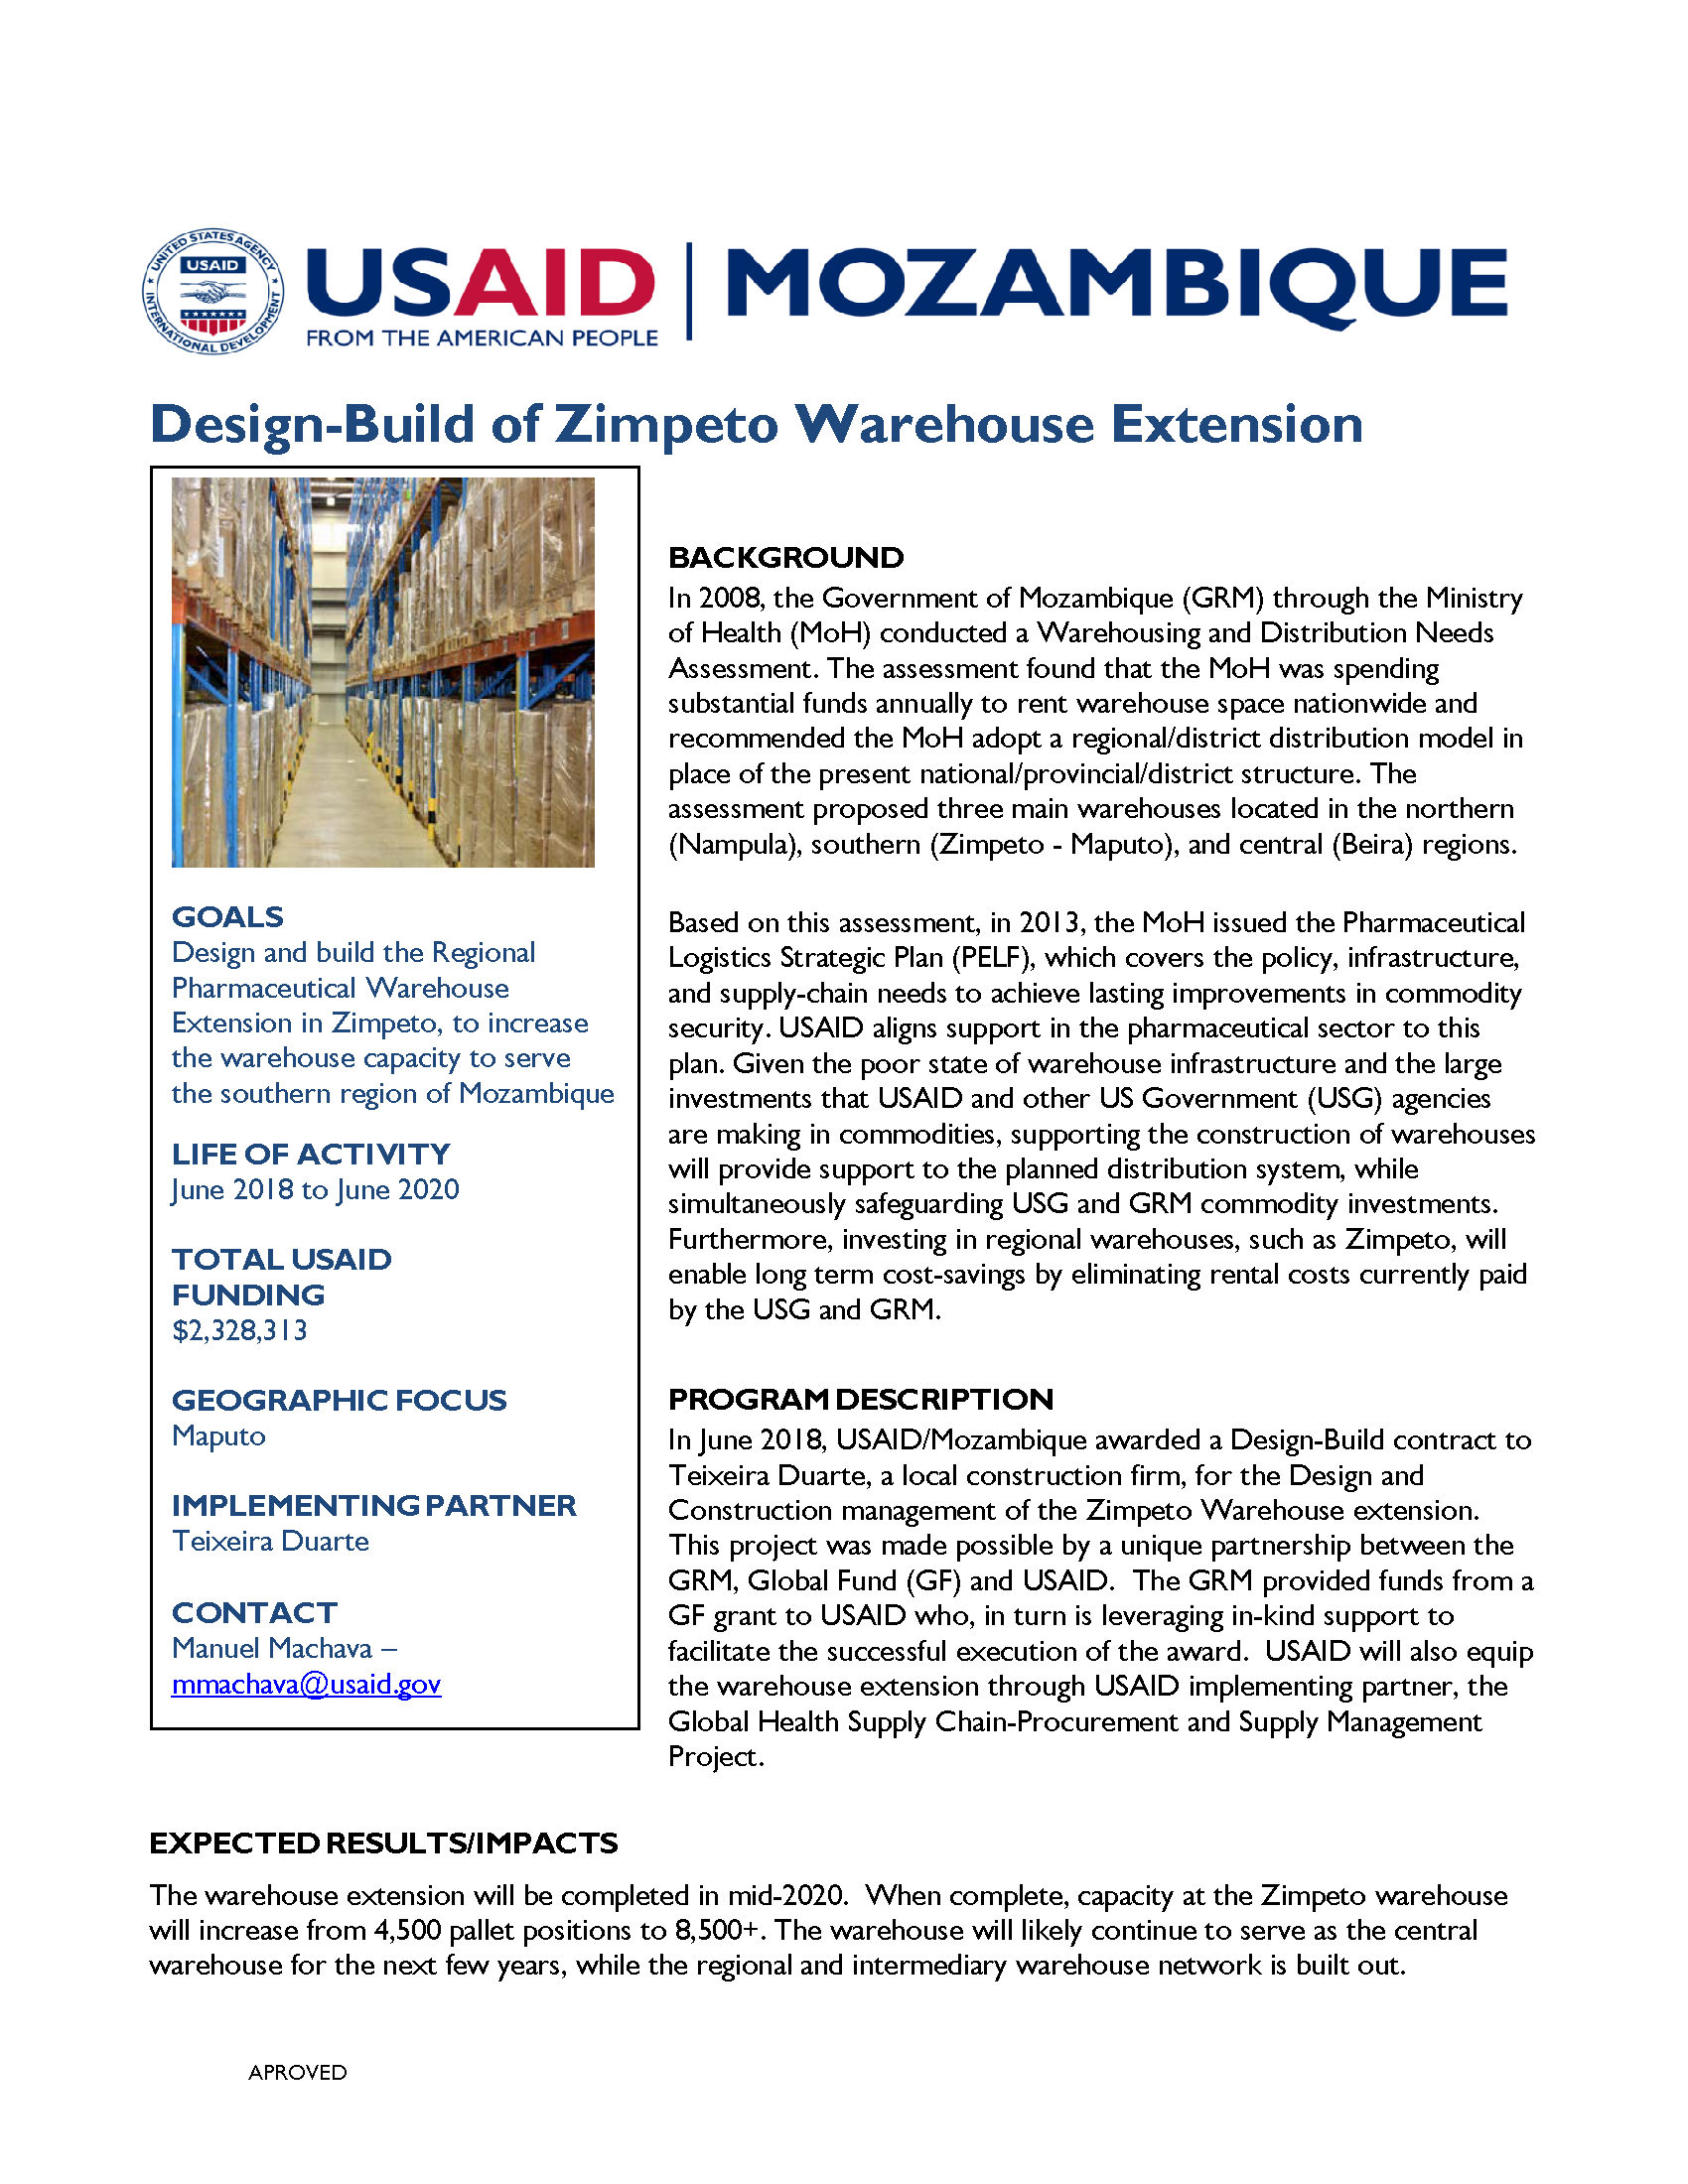 Design-Build of Zimpeto Warehouse Extension Fact Sheet